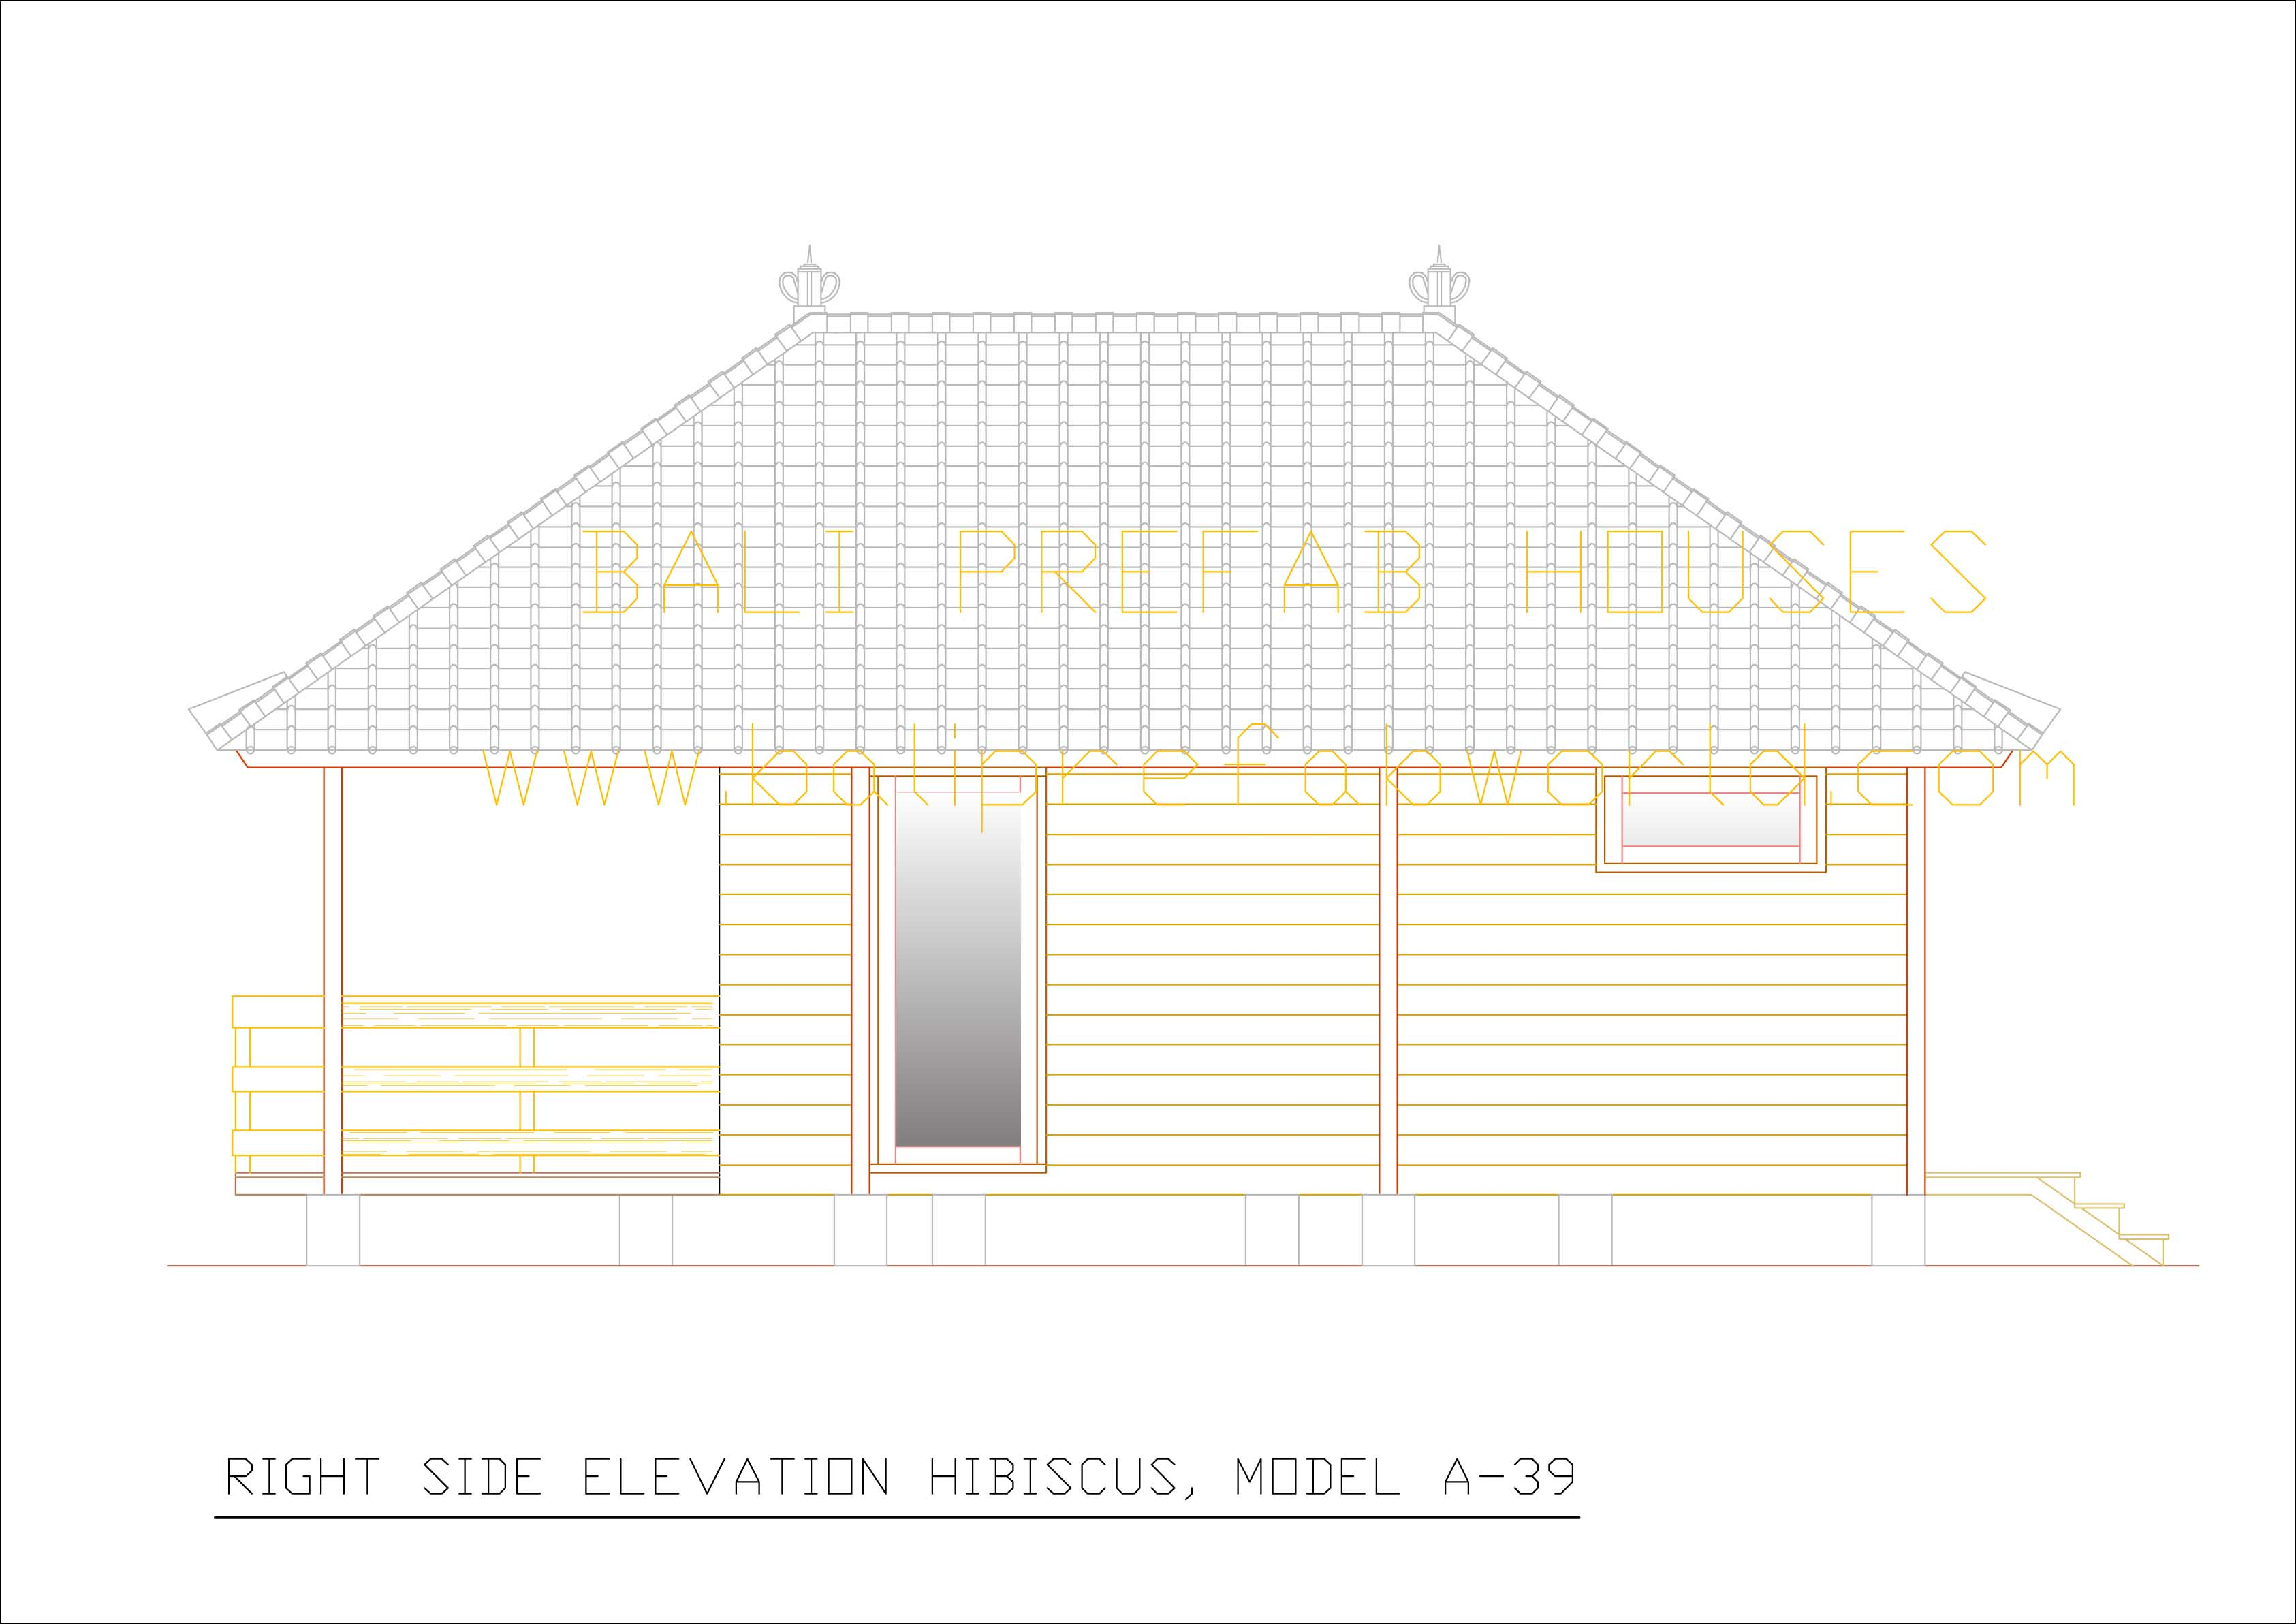 Front Elevation Side Elevation : Bali prefab world lilis hibiscus extended anggrek